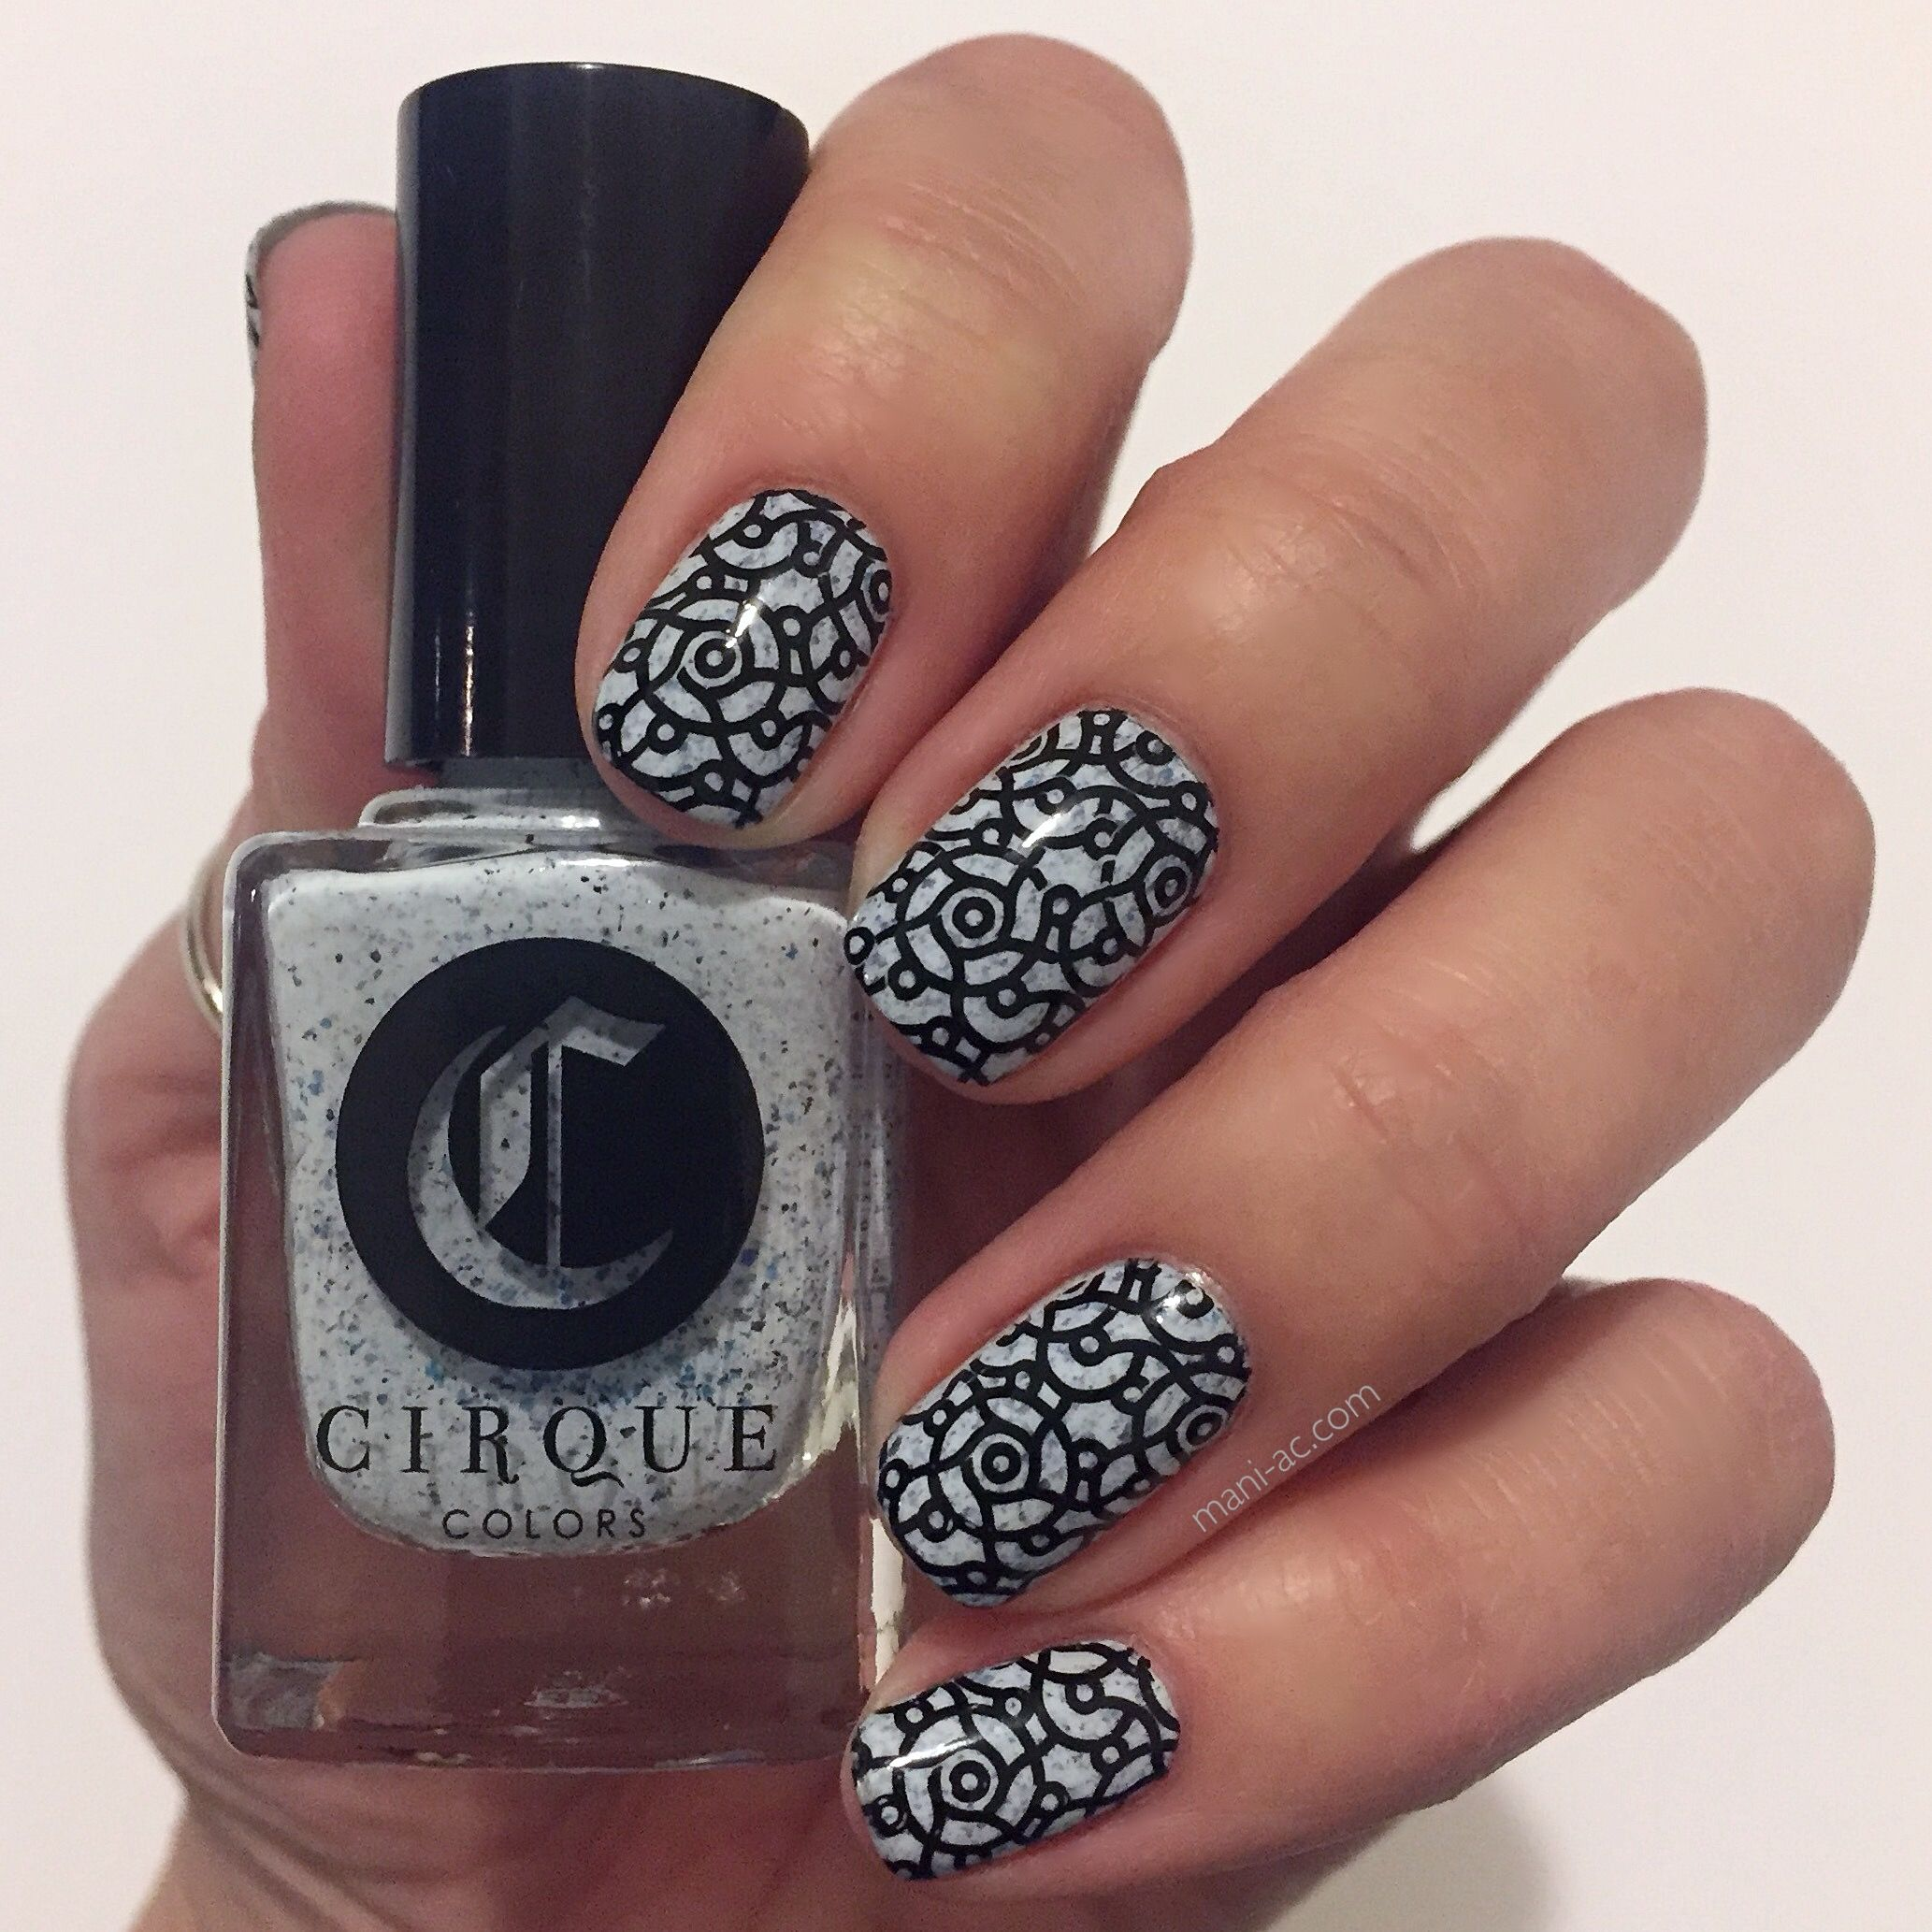 Stamped manicure: Cirque Colors - Acid Wash, MoYou London - Black Knight, Bundle Monster Plate - XL220, Seche Vite - Dry Fast Top Coat